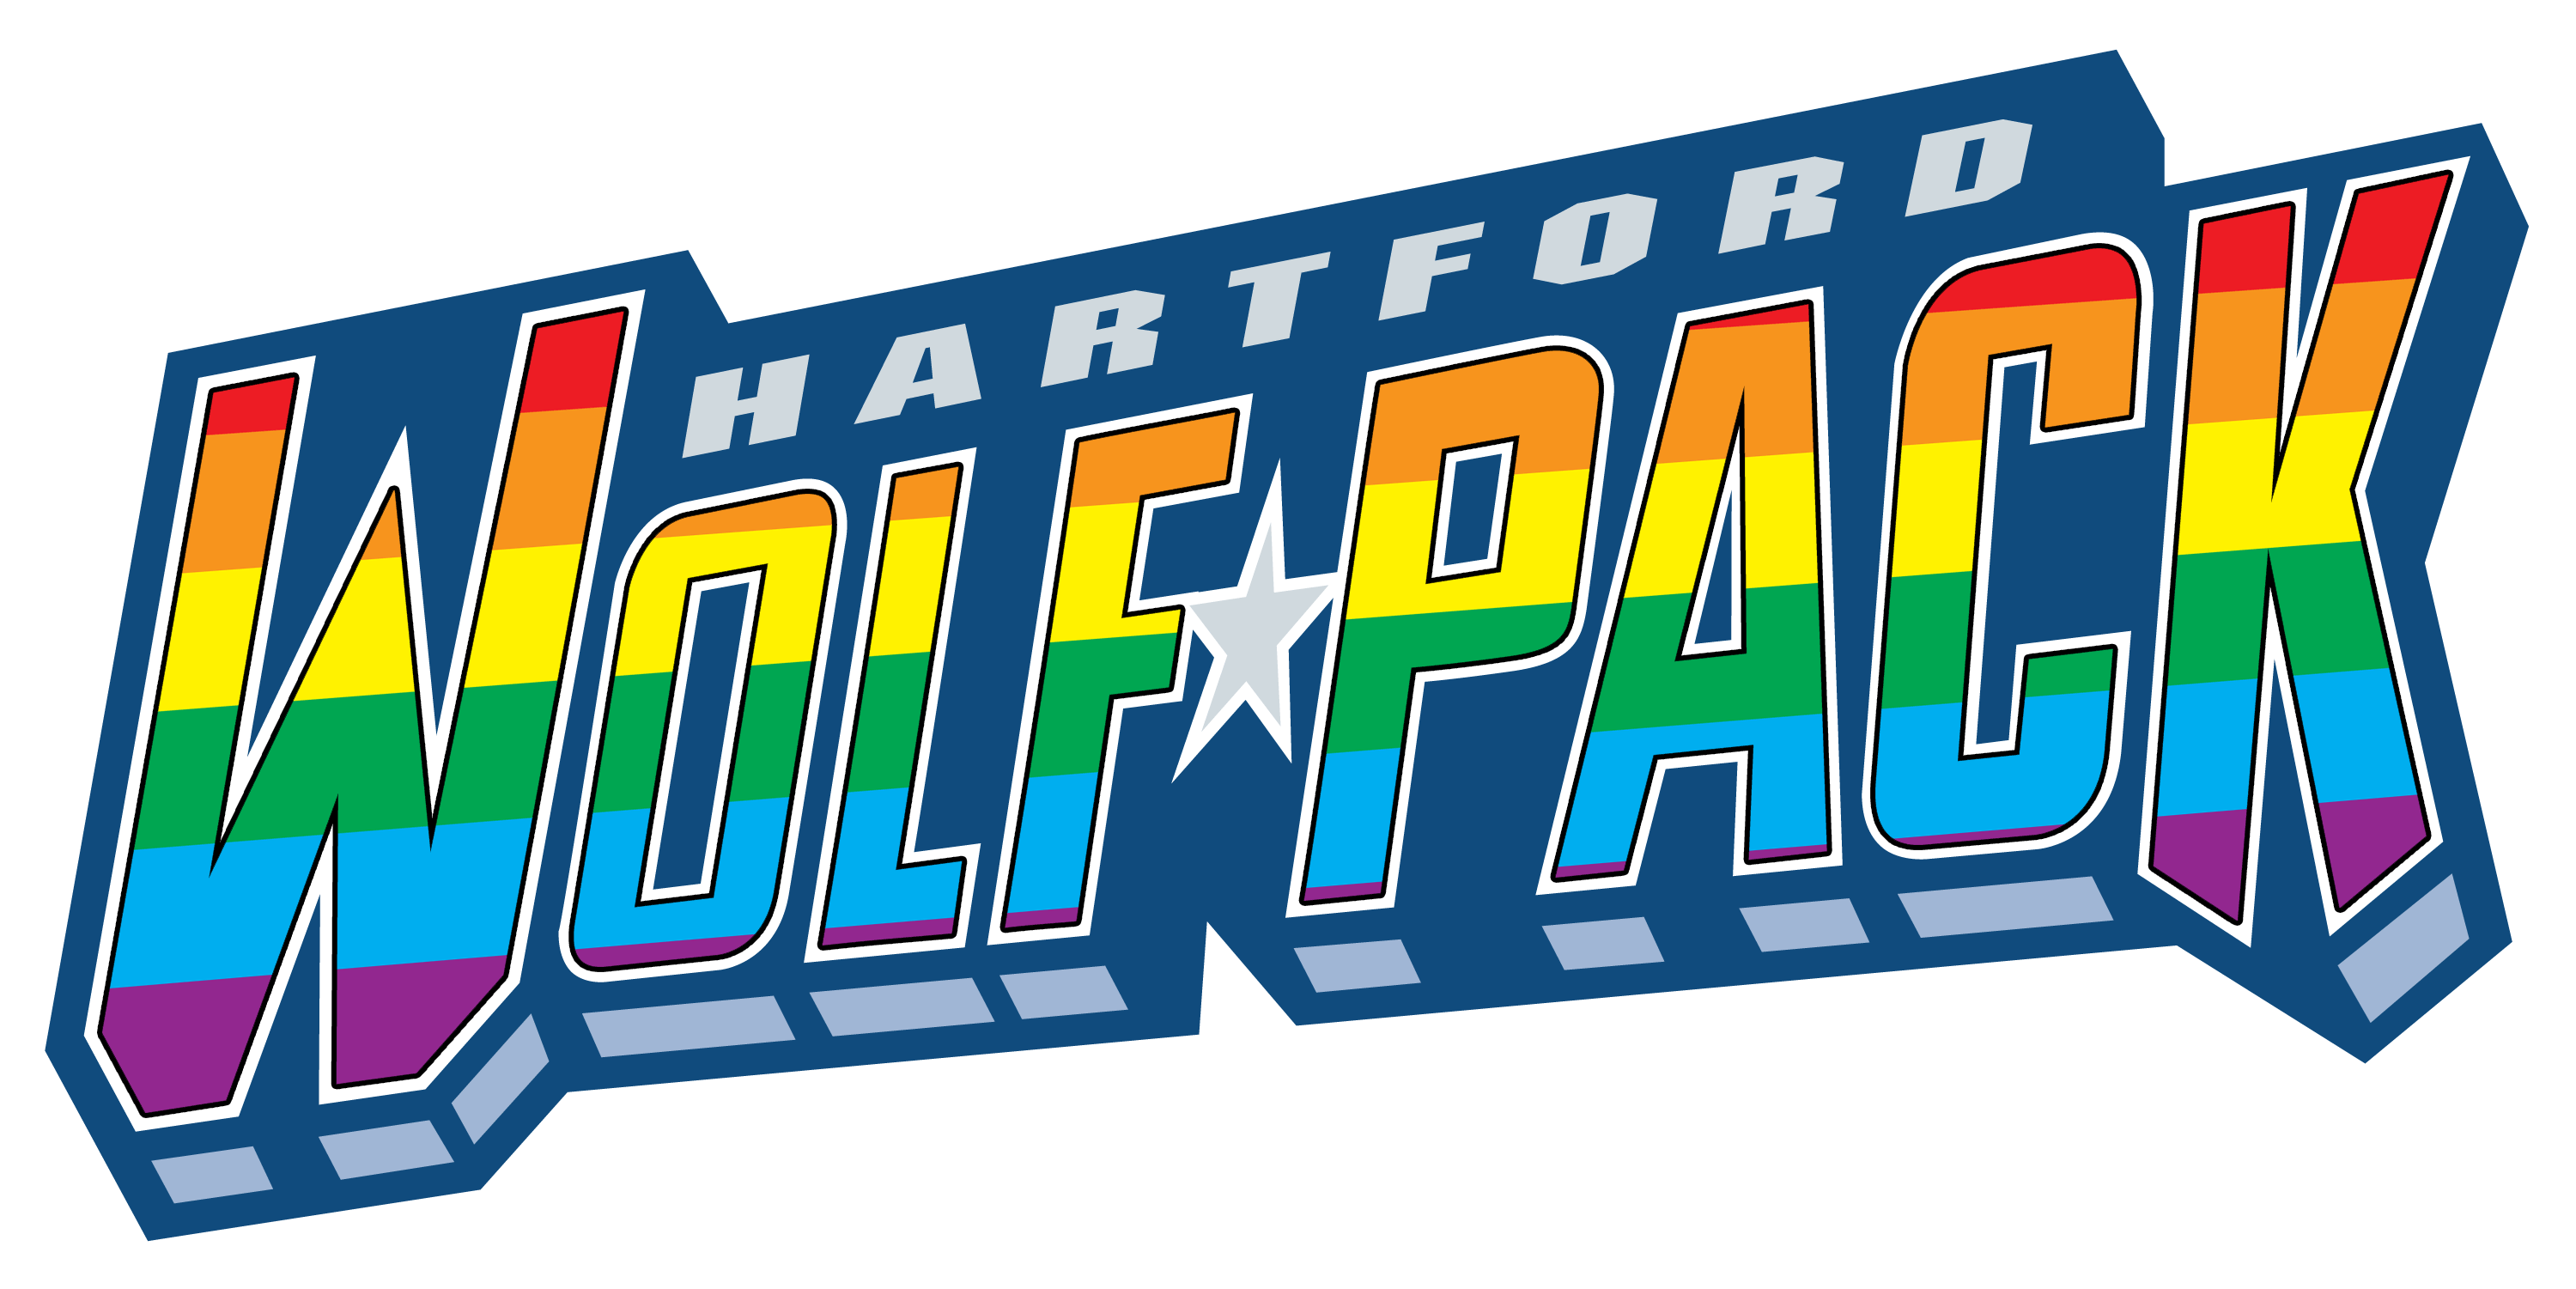 Wolf pack set to. Raffle clipart attendance